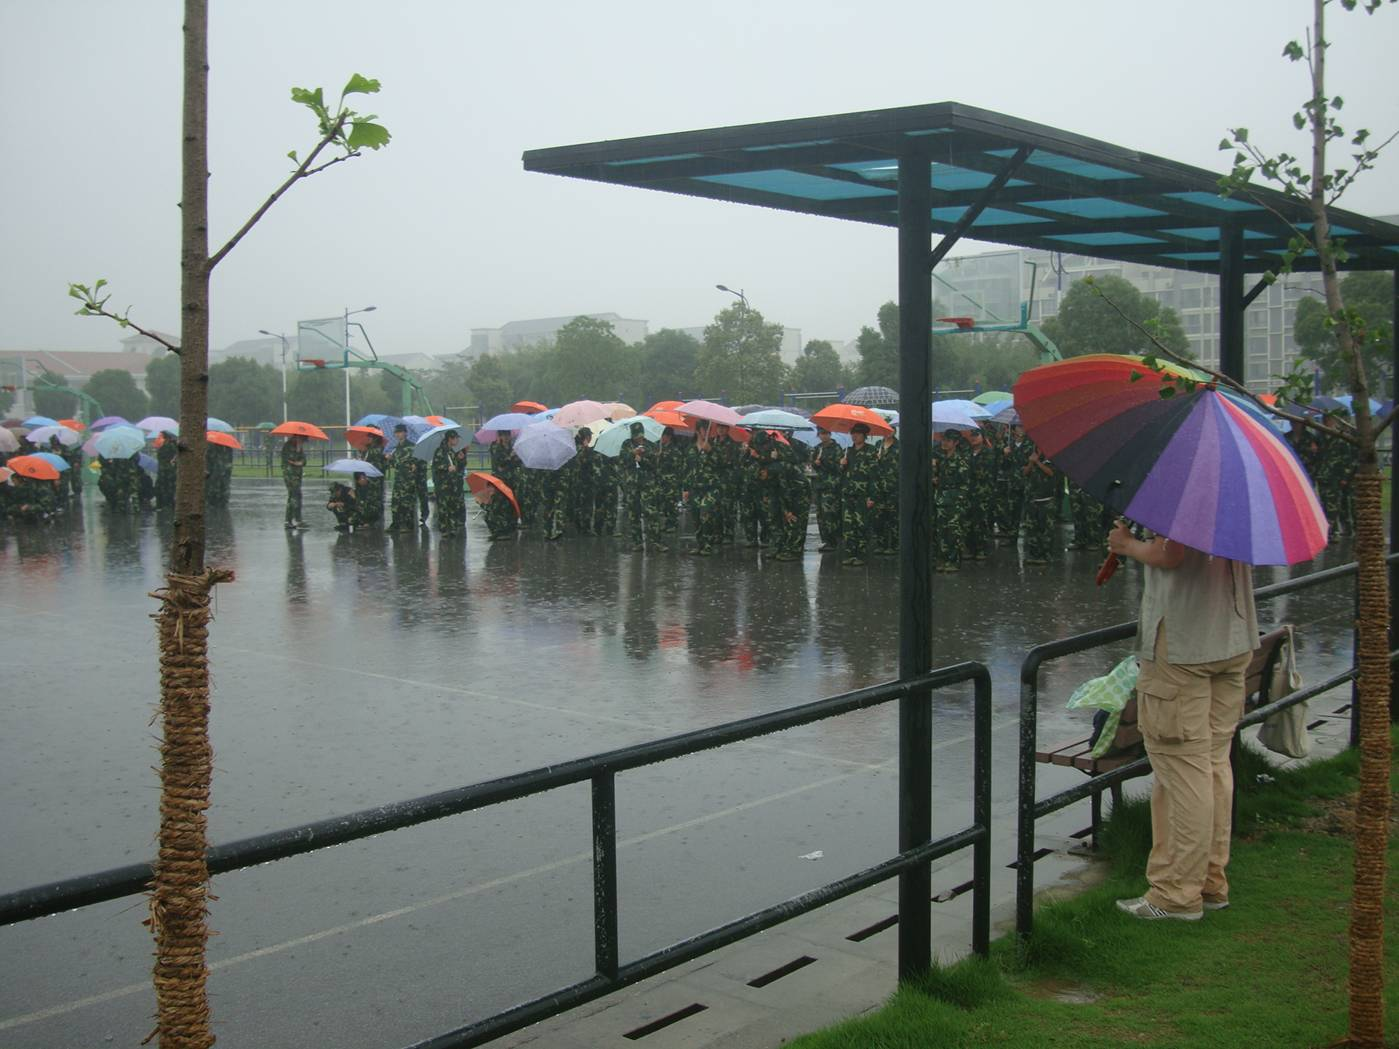 Picture:  Freshmen hold umbrellas during military training.  Jiangnan University, Wuxi, China